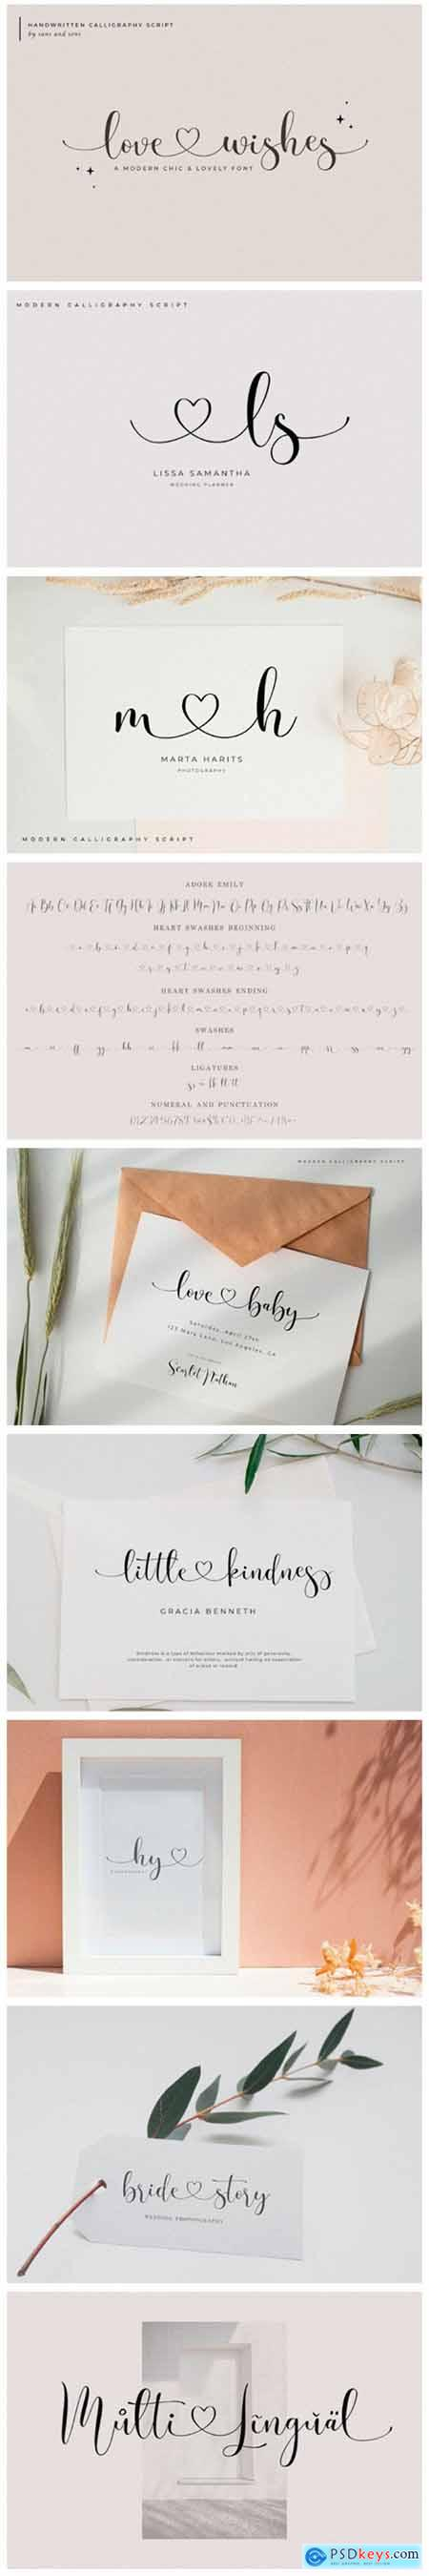 Love Wishes Font